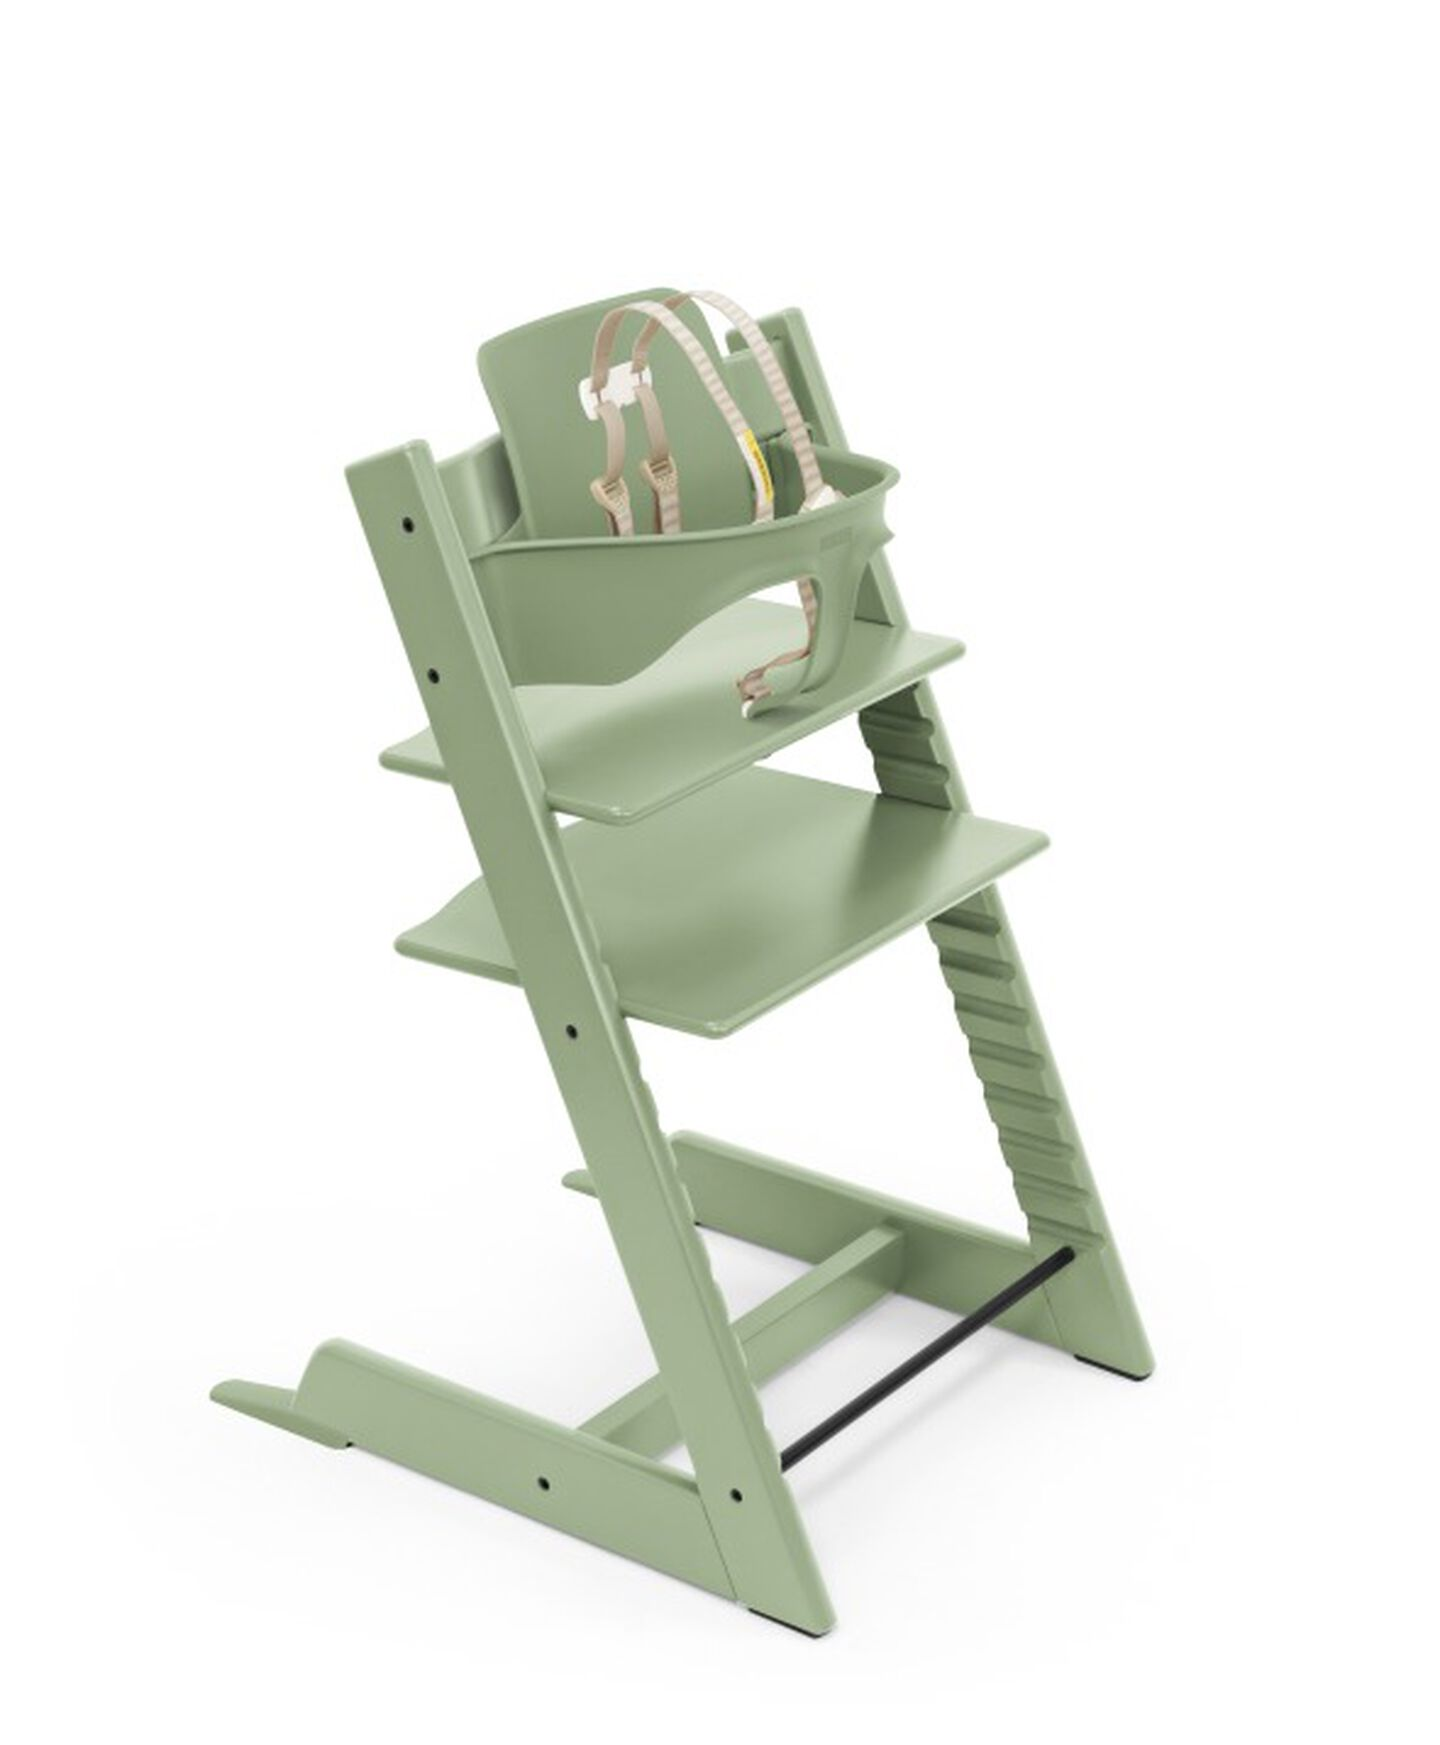 Tripp Trapp® Baby Set Moss Green, Moss Green, mainview view 2